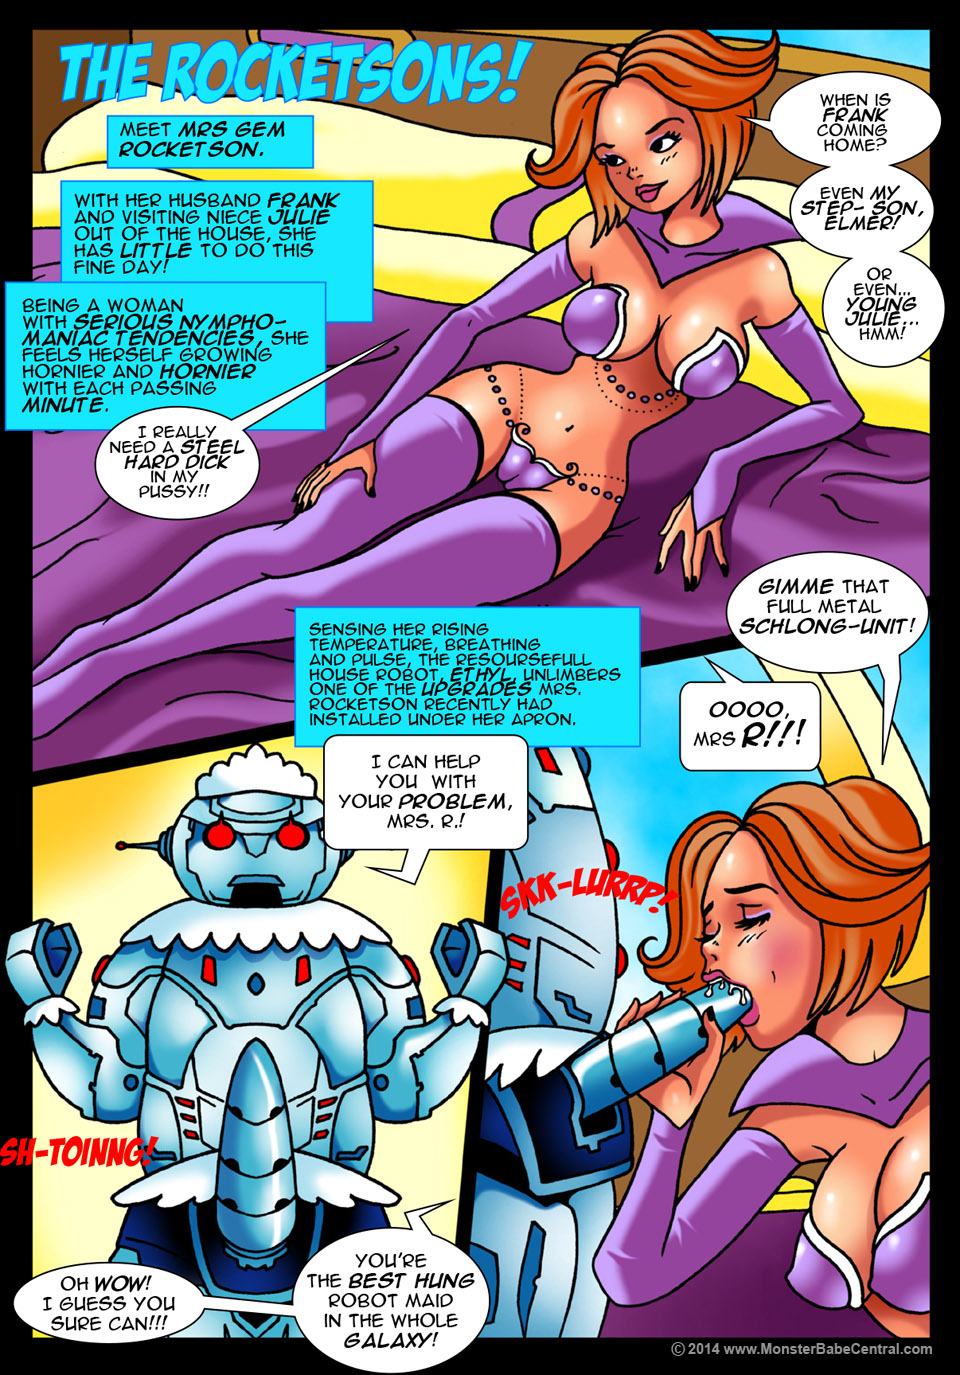 Goodcomix.tk The Jetsons - [MonsterBabeCentral] - The Rocketsons